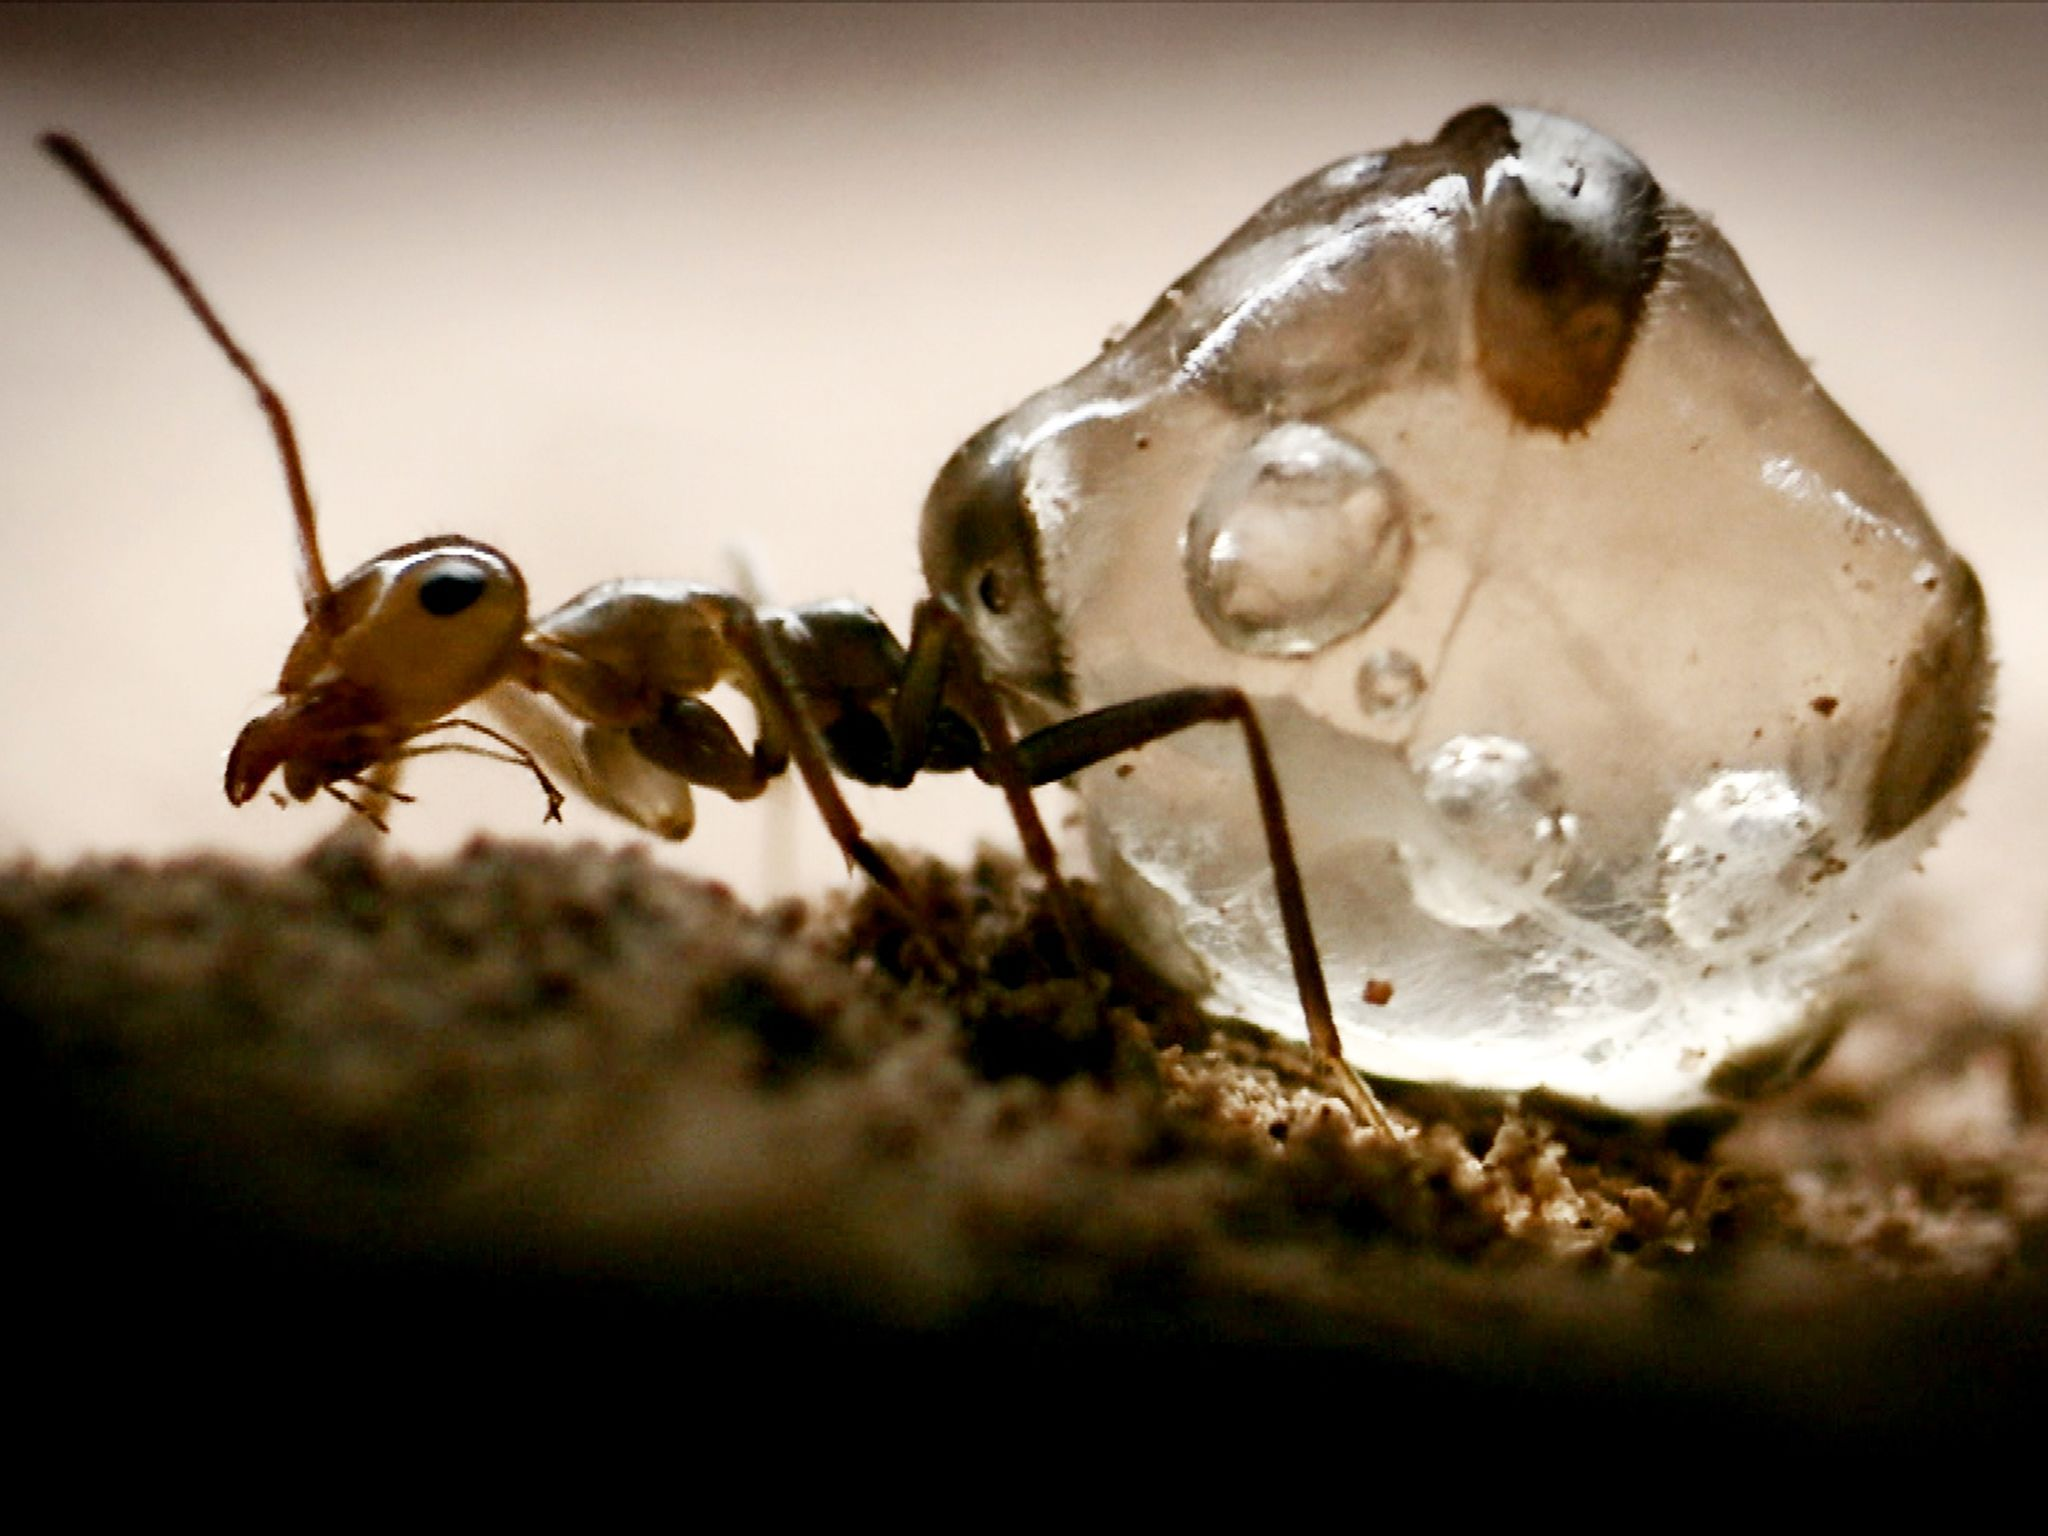 Honey ant. This image is from Secrets of the Wild. [Photo of the day - اکتوبر 2014]